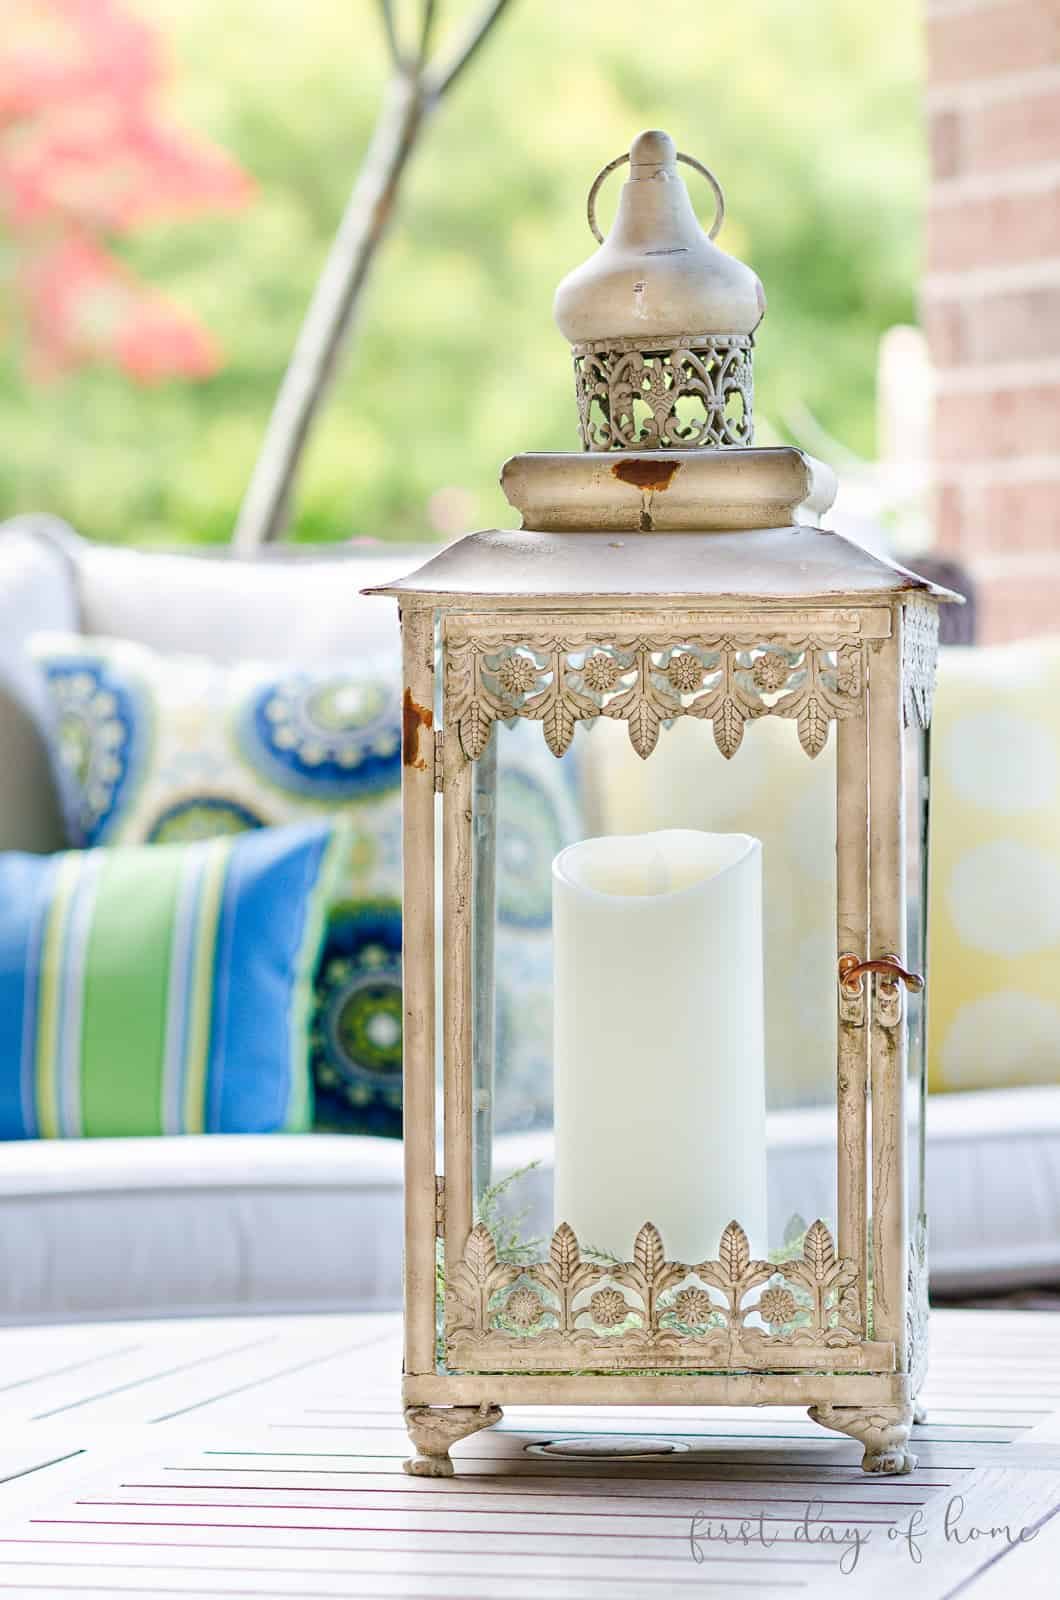 Moroccan style lantern with Moroccan pillows on patio furniture in background for outdoor lantern decorating ideas